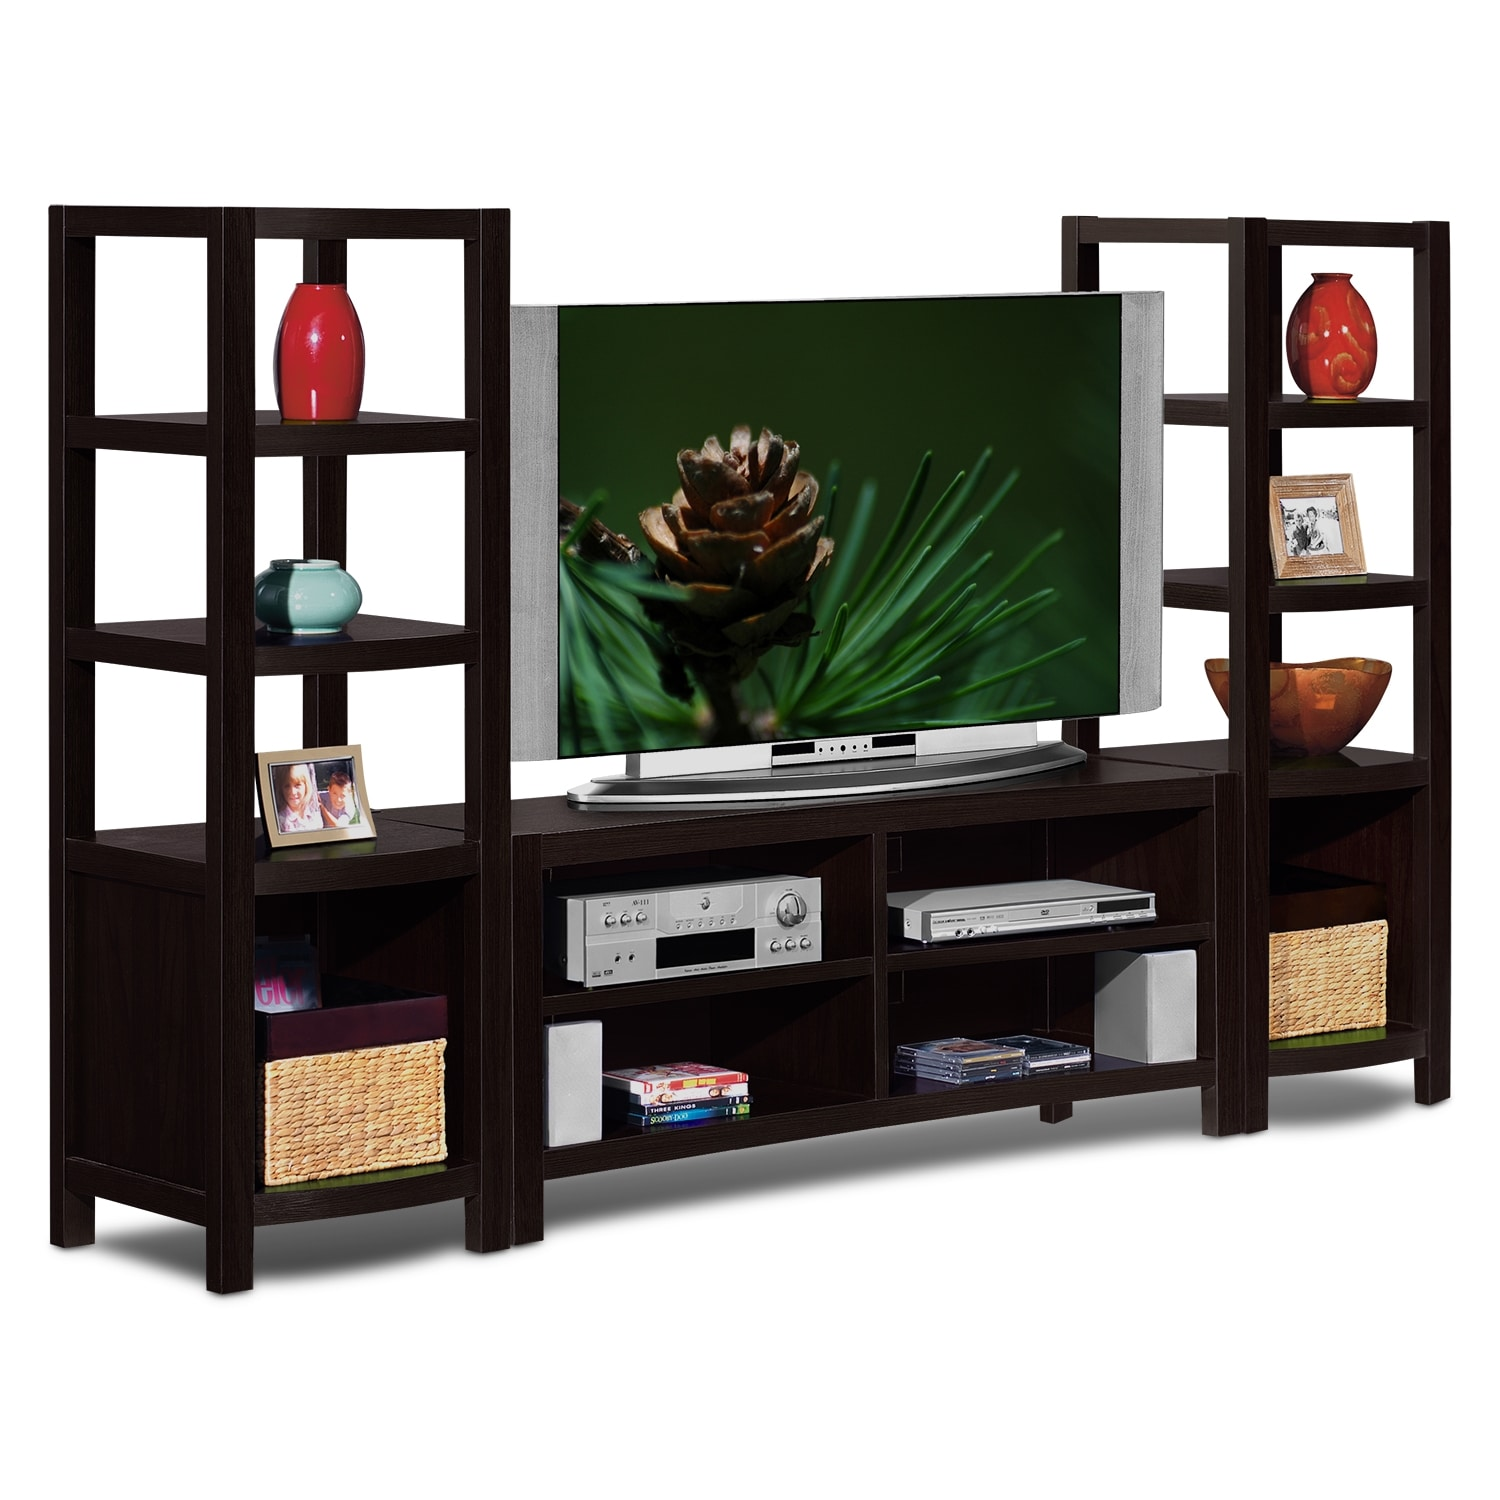 Townsend 3 Pc. Entertainment Wall Unit